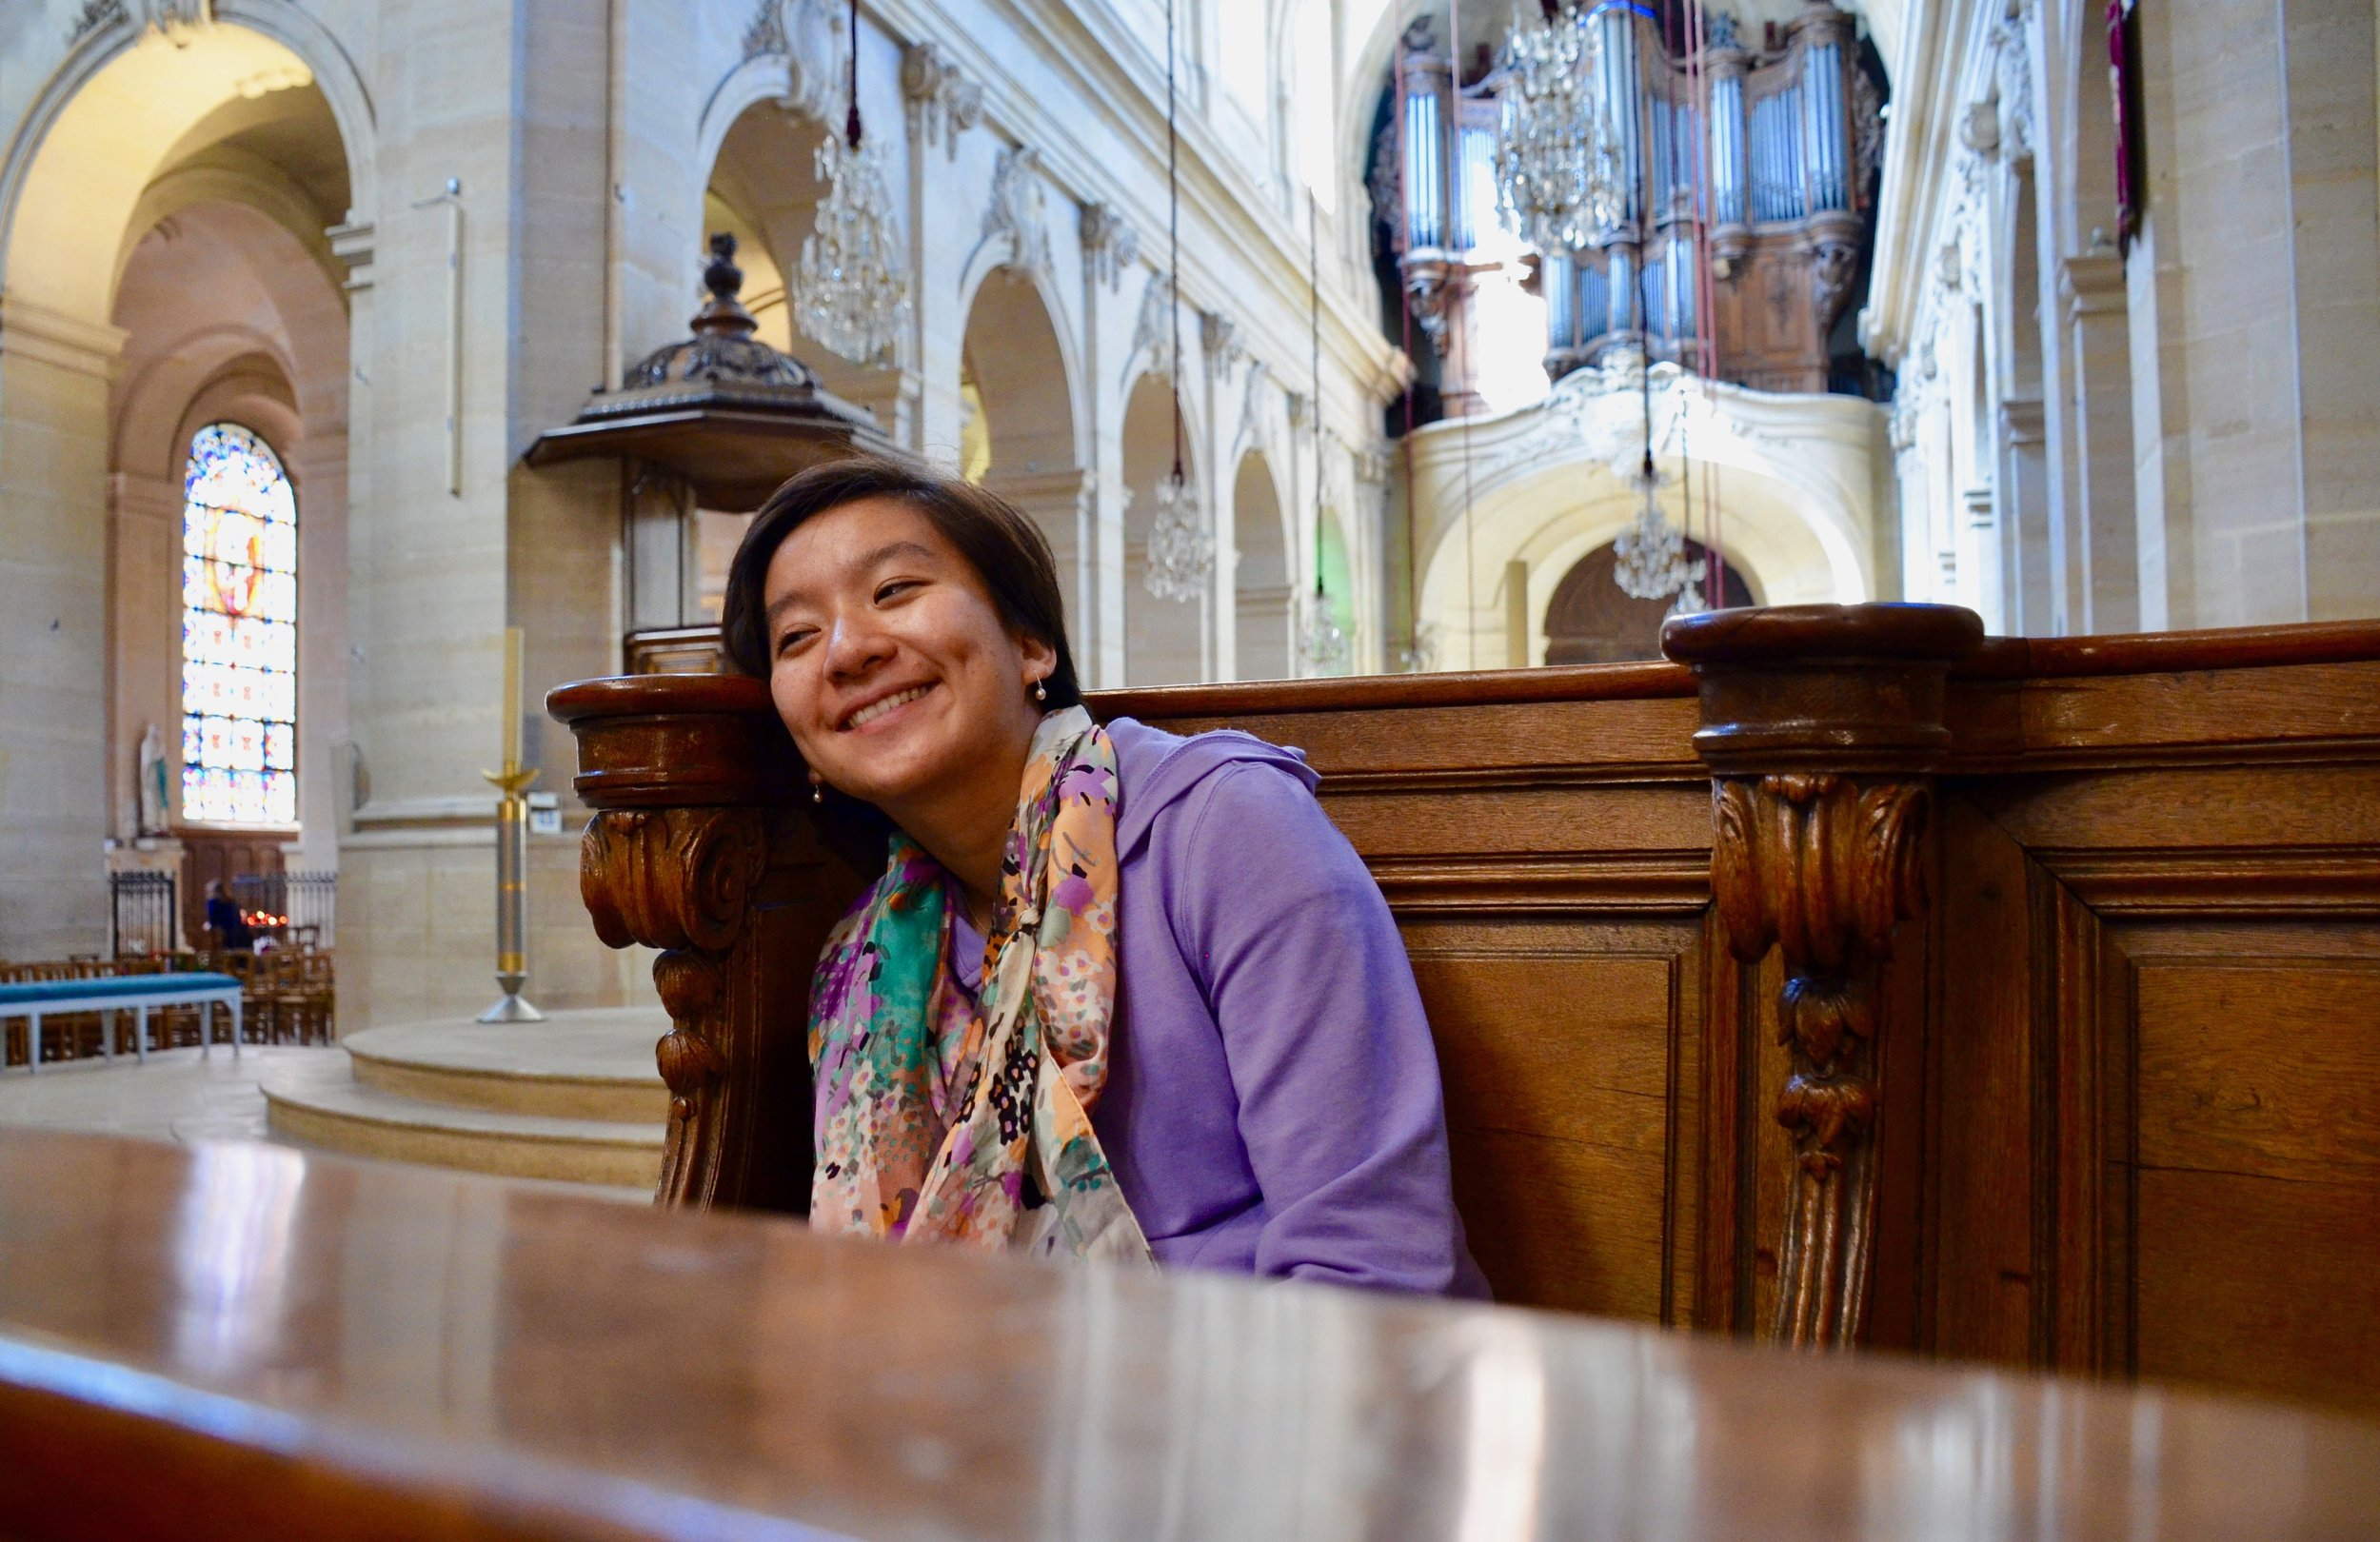 Olivia Chen is all smiles about the Choir Organ at Saint Louis